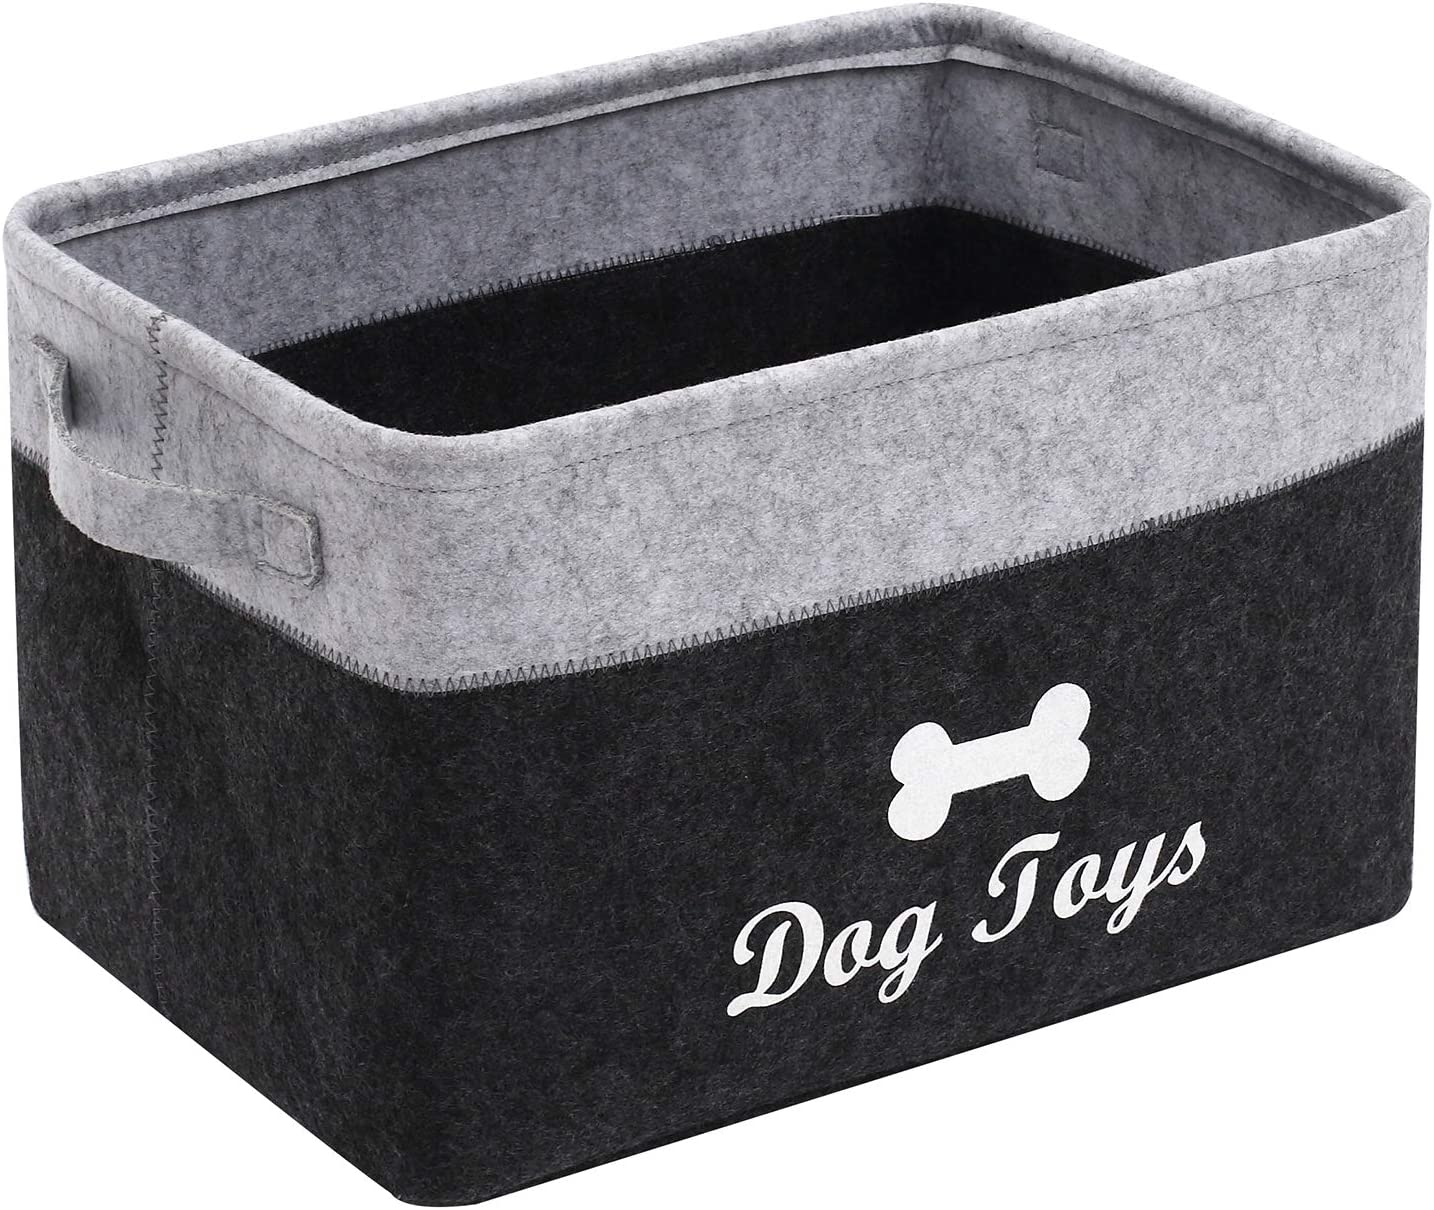 Geyecete Dog Toys Storage Bins - Pet Toy and Accessory Storage Bin, Organizer Storage Basket for Pet Toys, Blankets, Leashes and Food